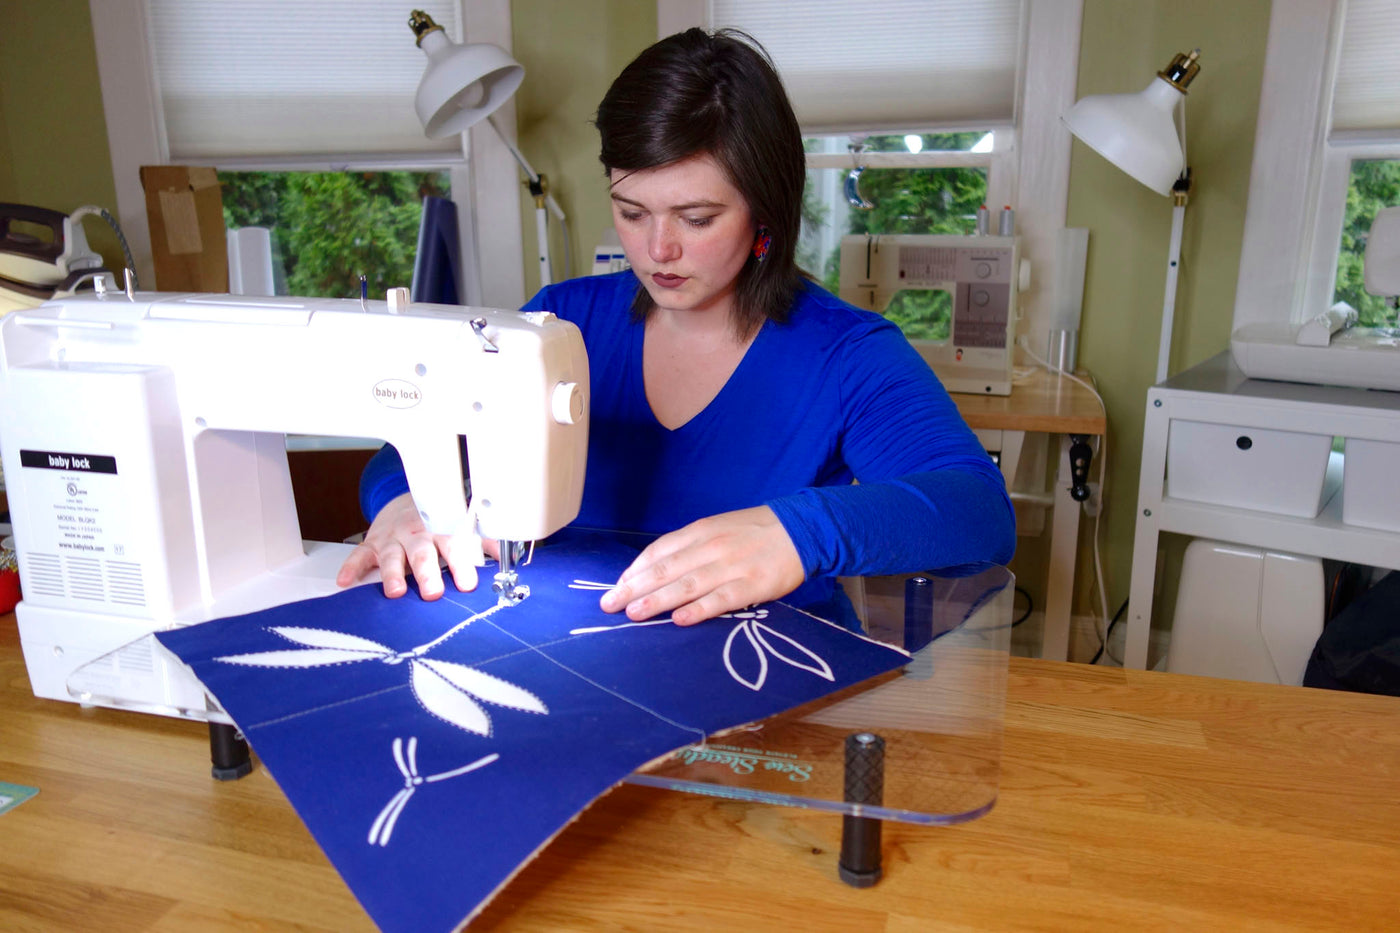 Victoria Stone of Okan Arts stitches a practice quilt tile with the Baby Lock Sashiko 2 machine